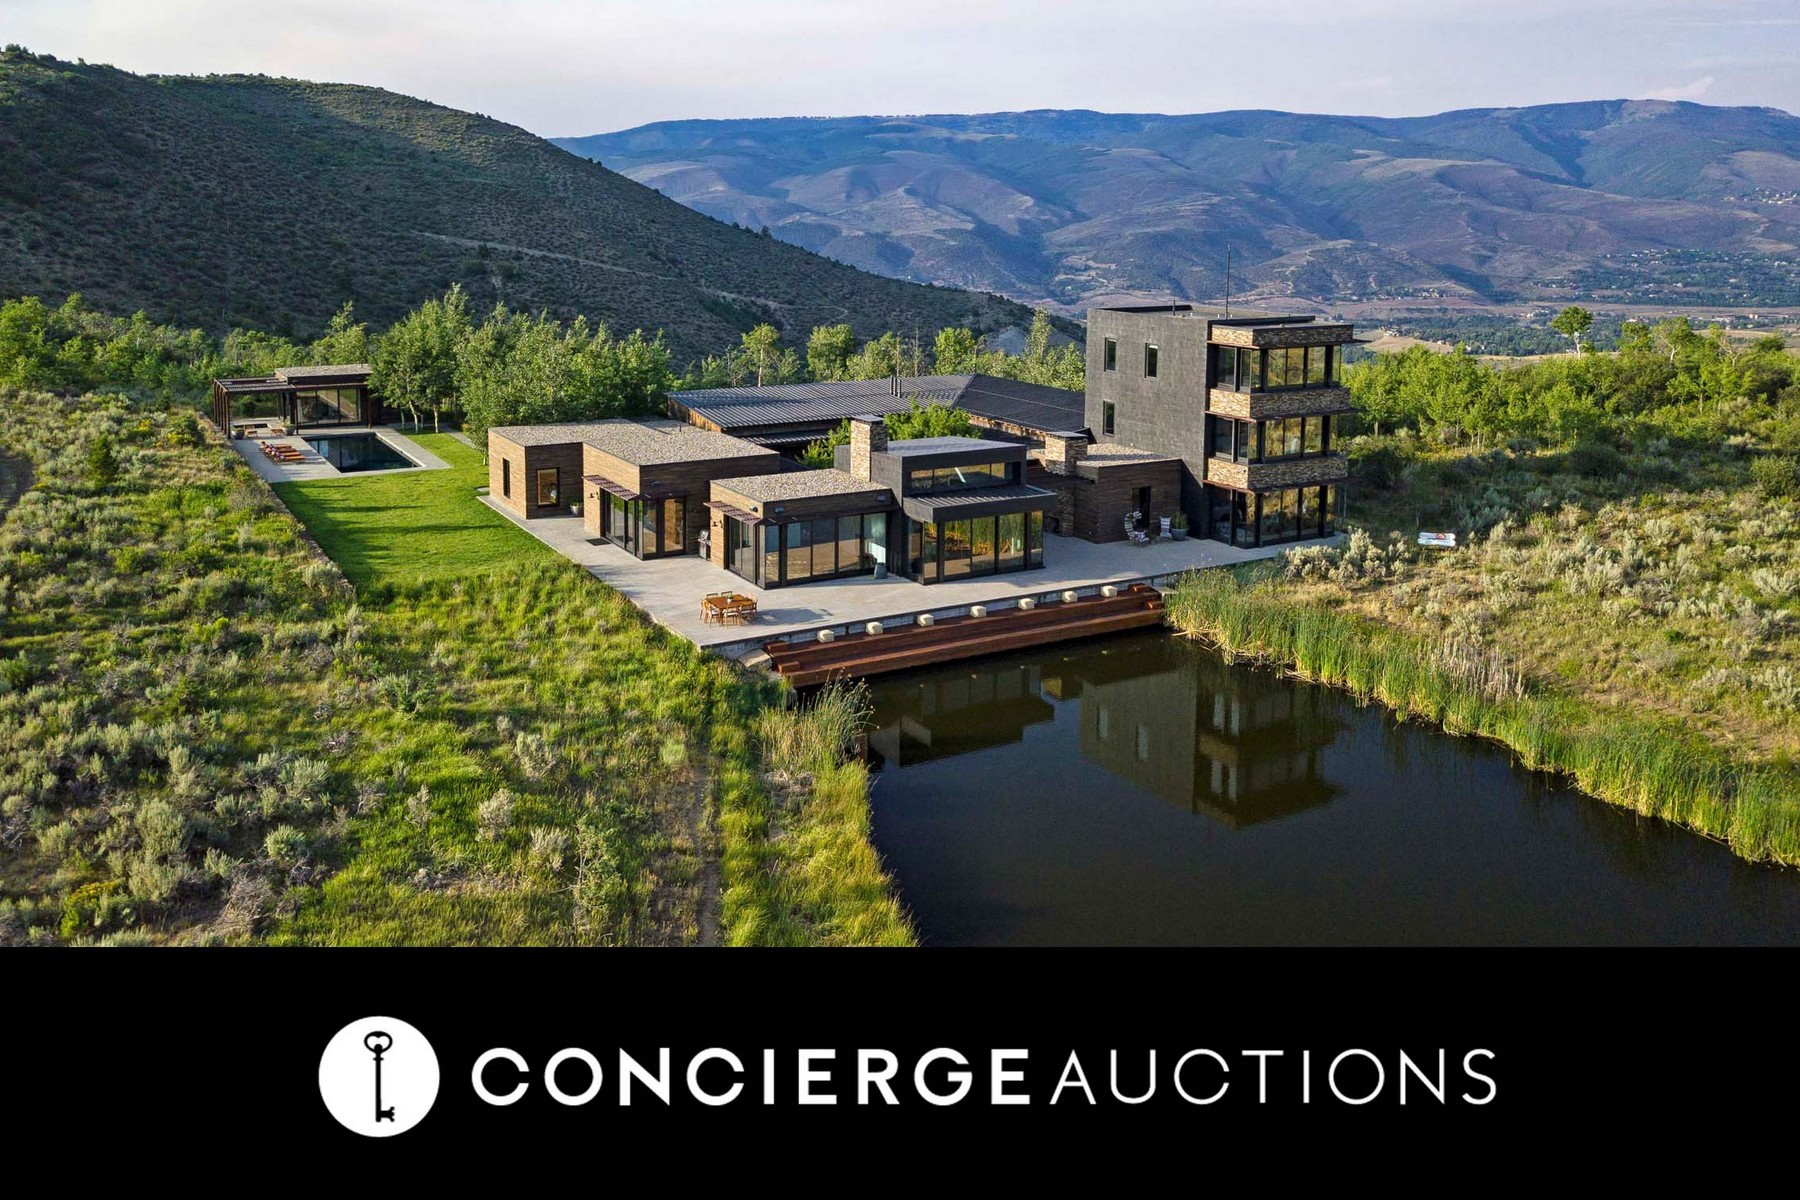 Single Family Homes for Sale at WALDEN HOUSE 705 Whiskey Ridge, Edwards, Colorado 81632 United States